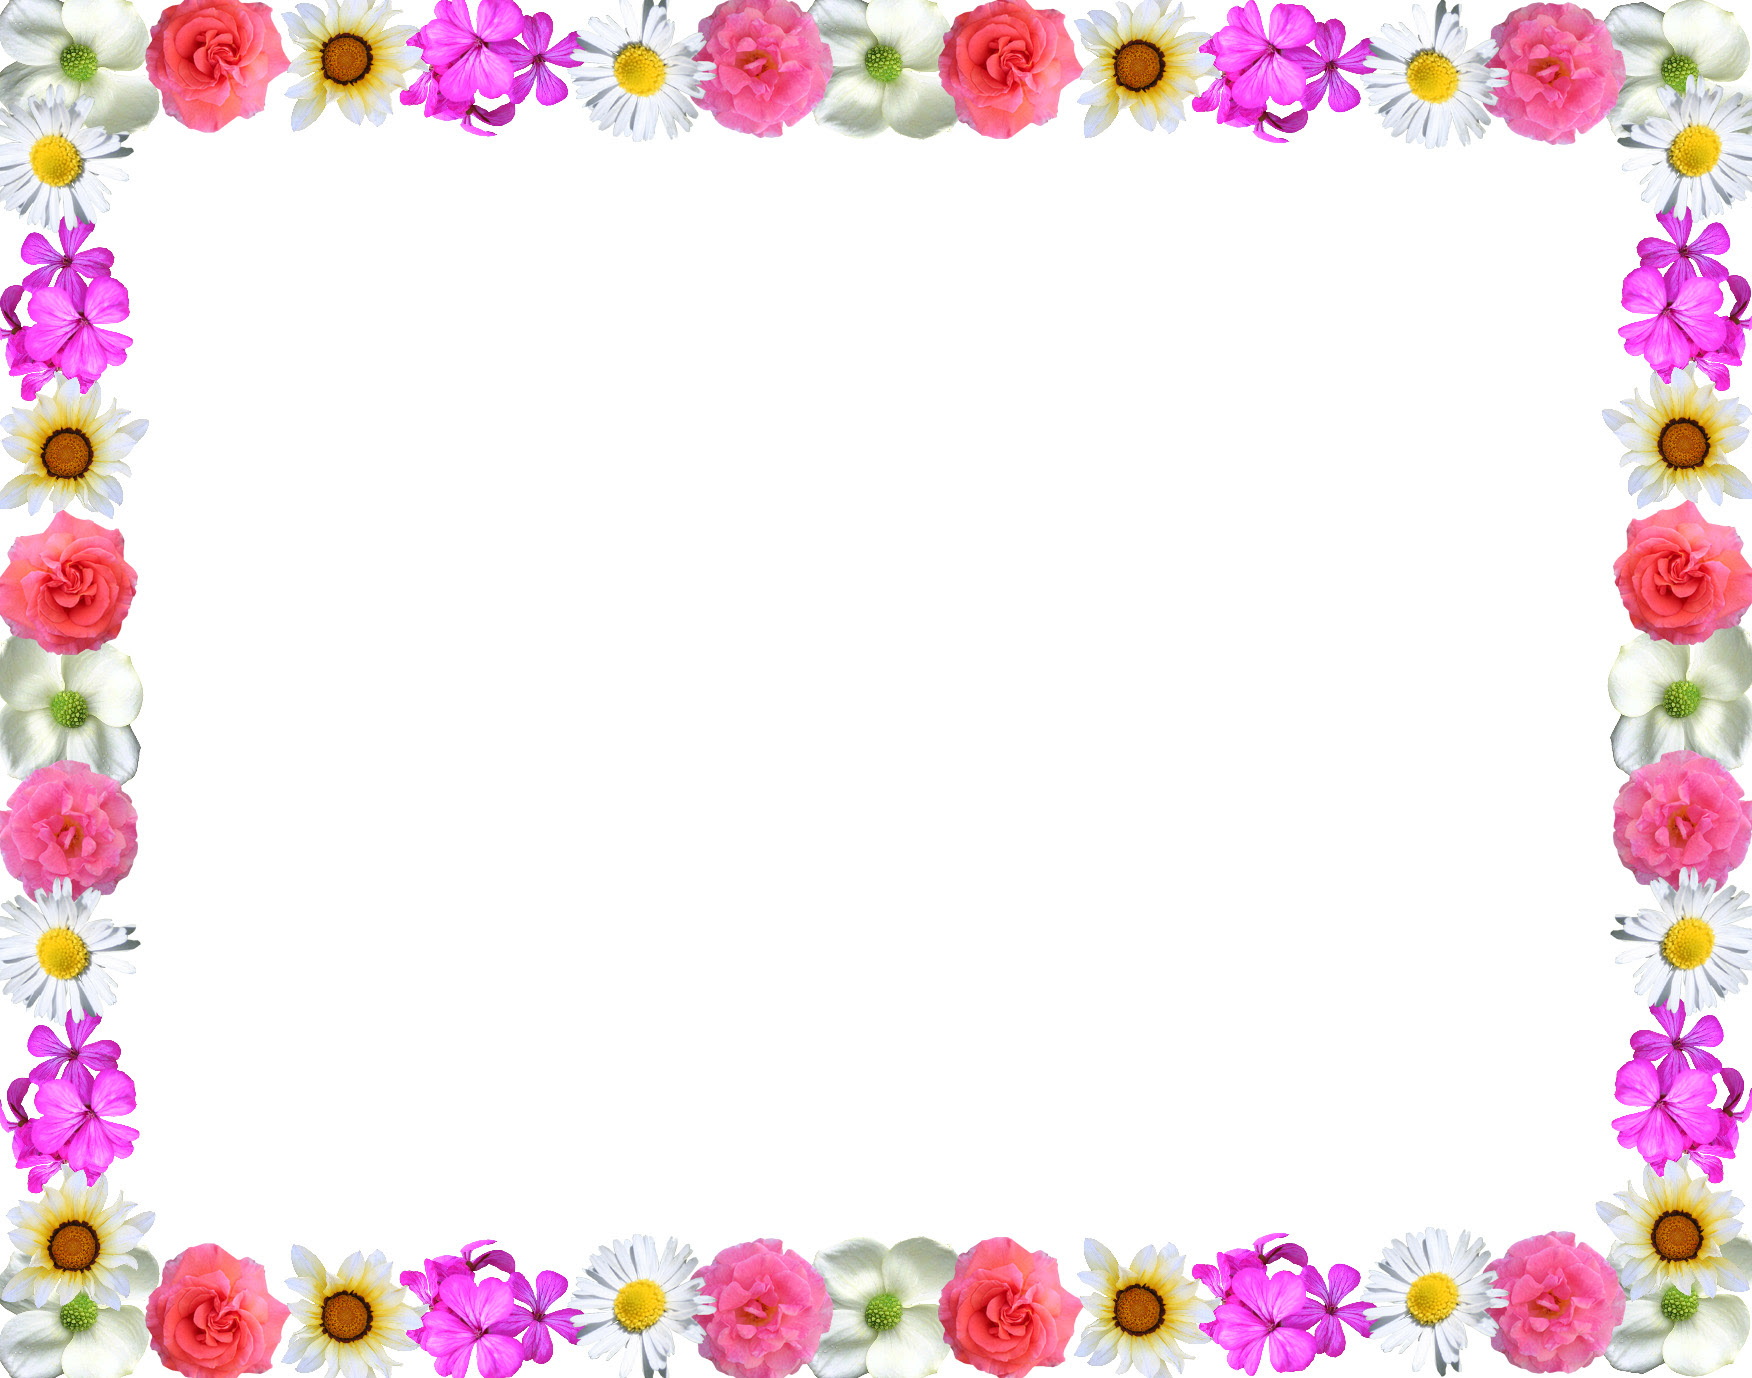 Free Simple Flower Design Border Download Free Clip Art Free Clip Art On Clipart Library